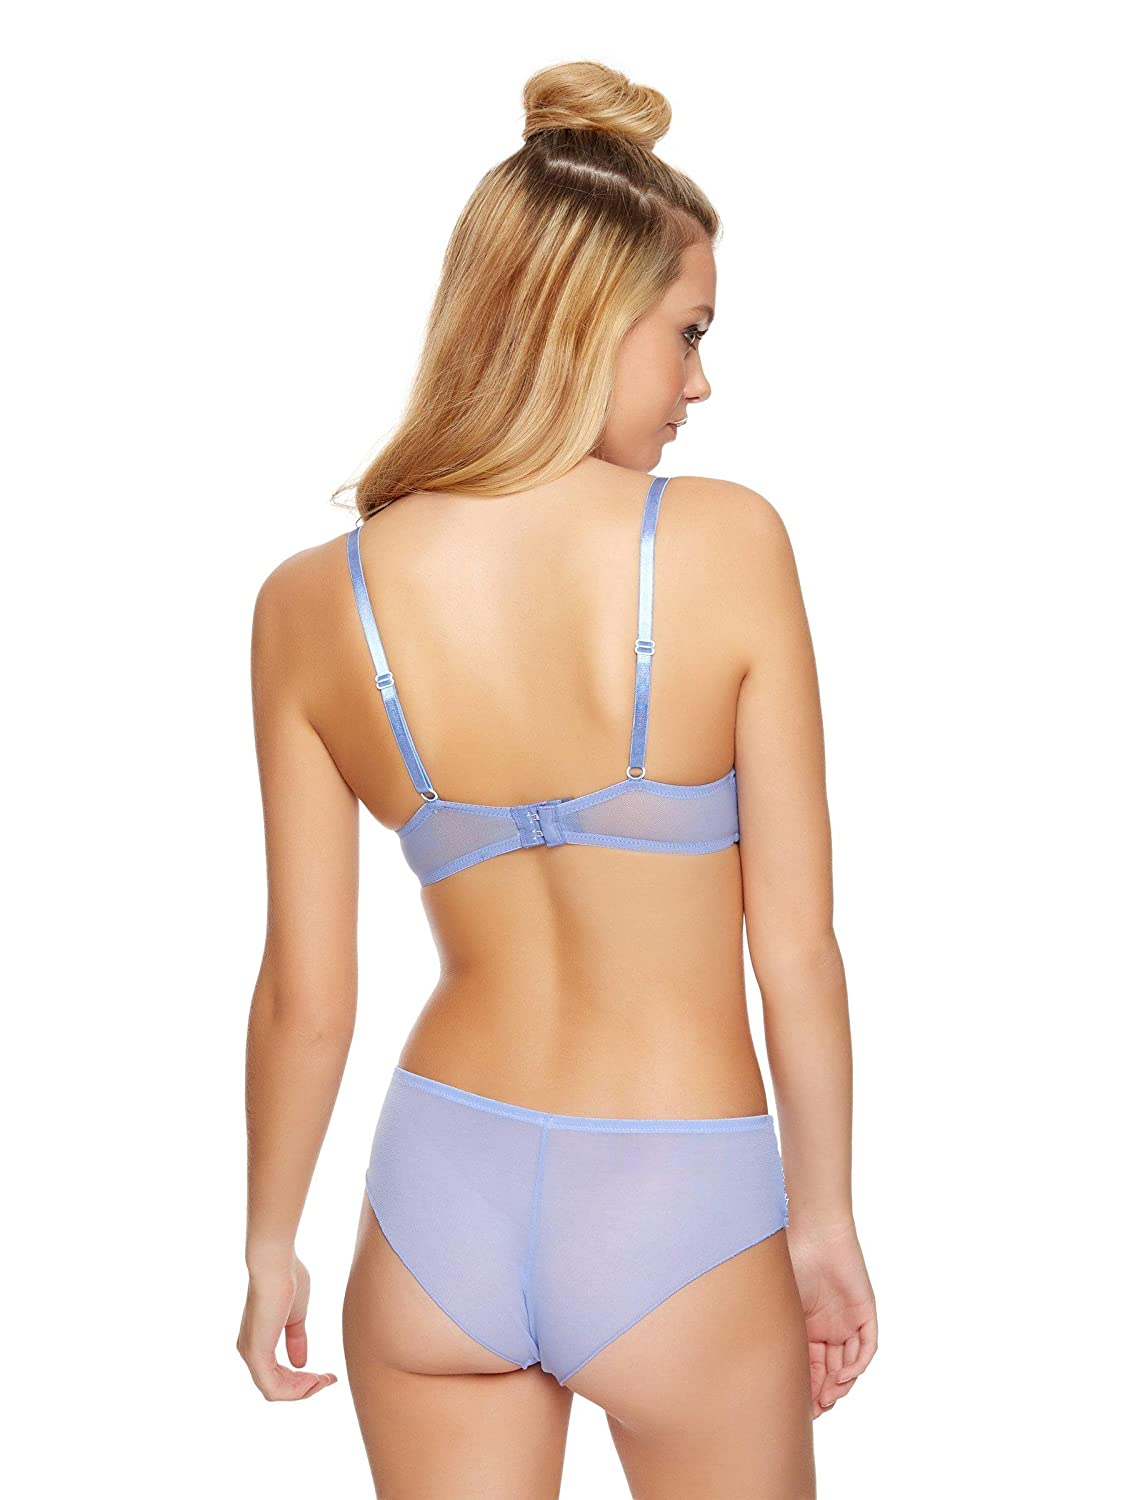 Ann Summers Womens Knickerbox Lanie Plunge Bra Blue Lace Sexy Lingerie  Underwear Bluebell Pale Blue 32A  Amazon.co.uk  Clothing 9eeada19e